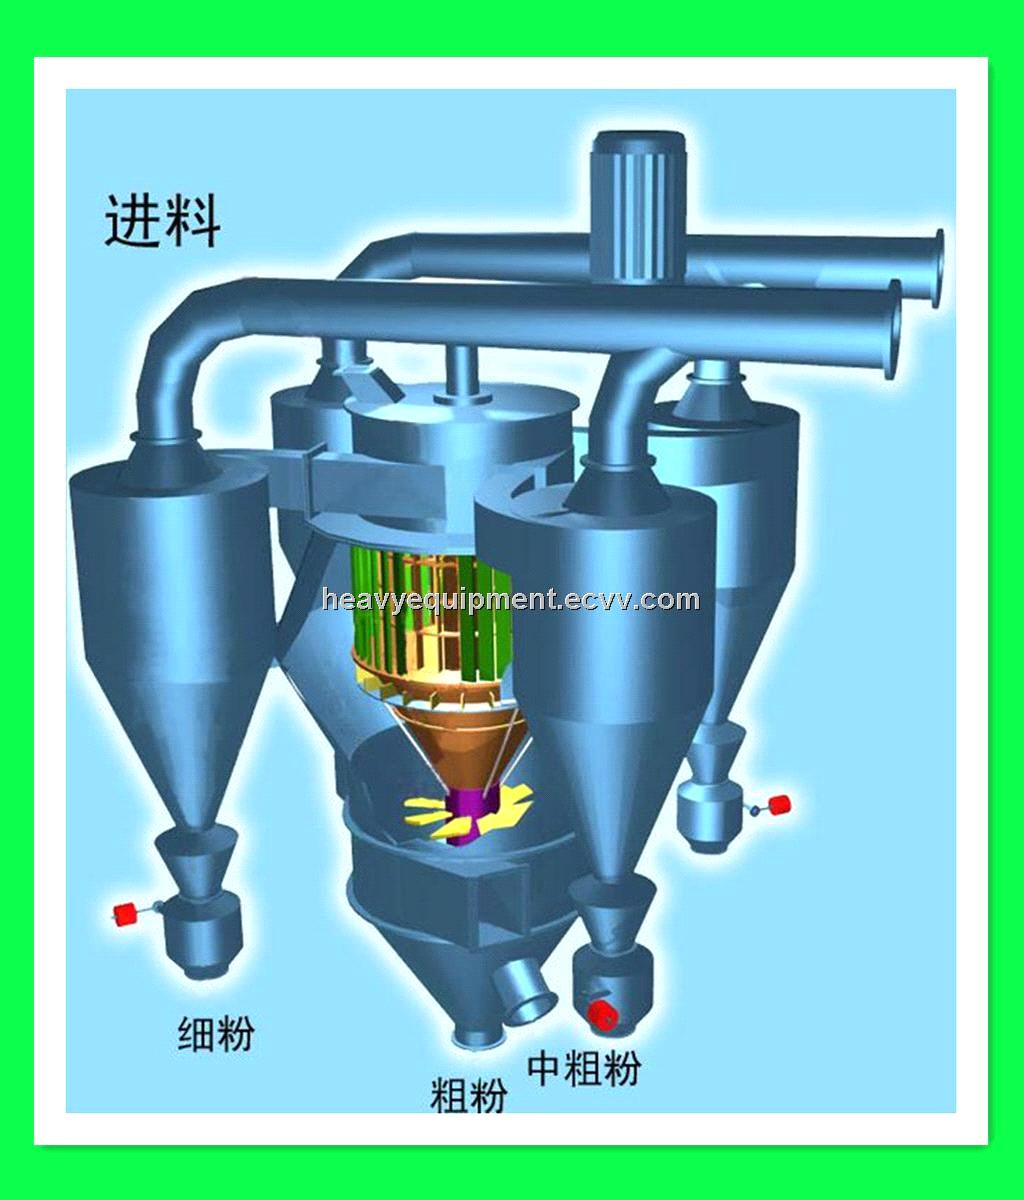 Powder Concentrator / Super-fine Powder Concentrator / Powder Concertrator from Shanghai China